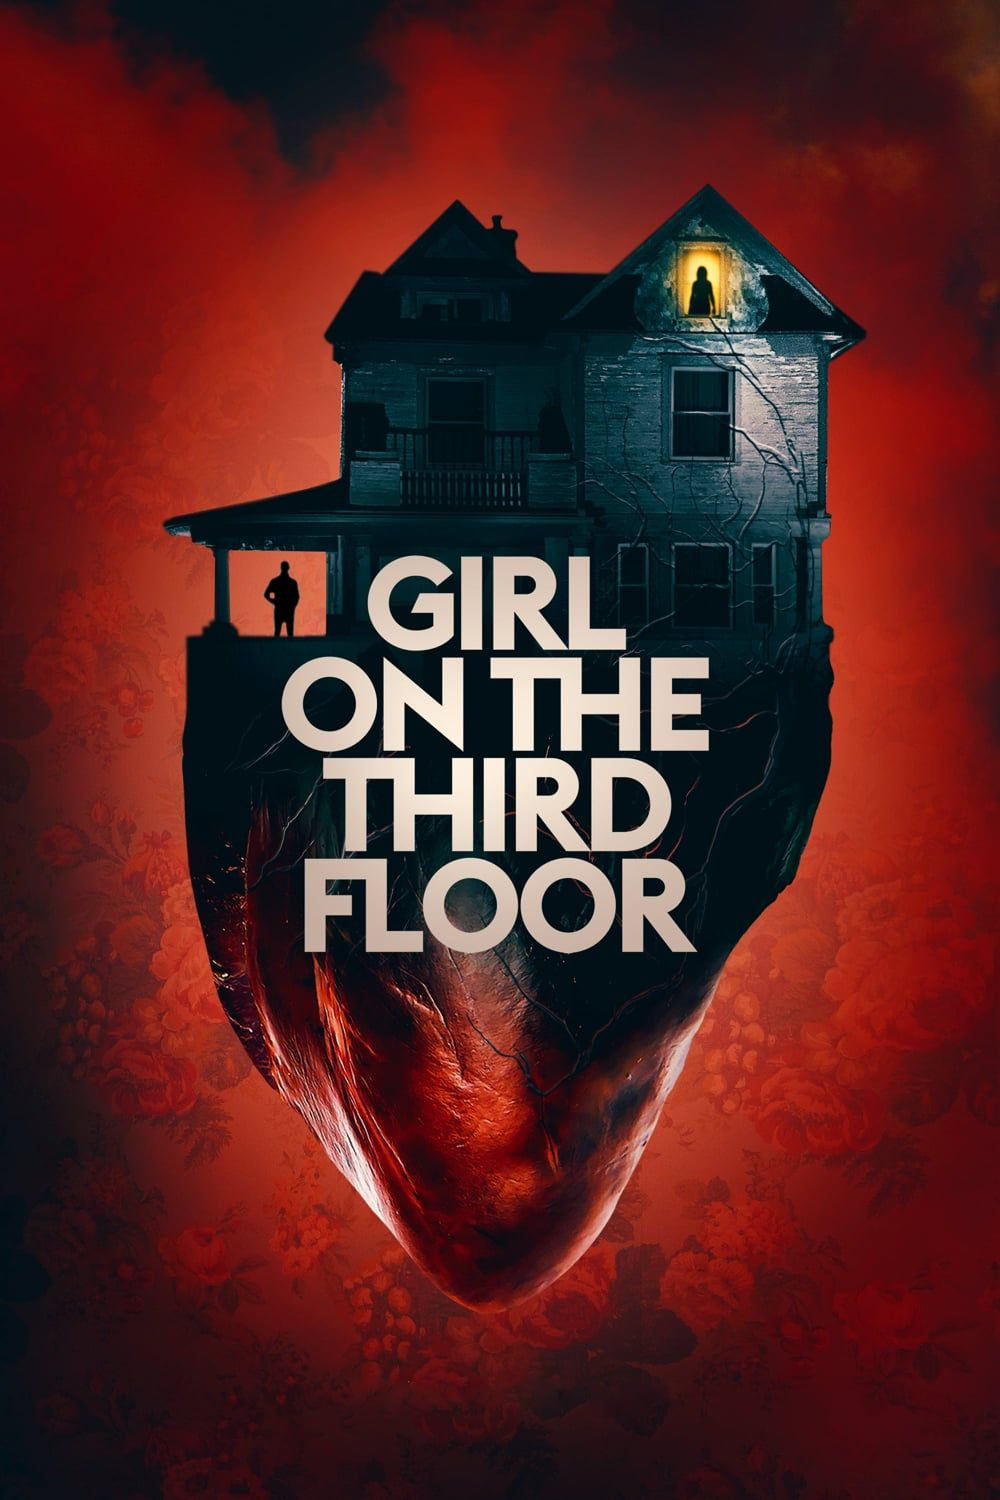 Girl on the Third Floor filme completo dublado online